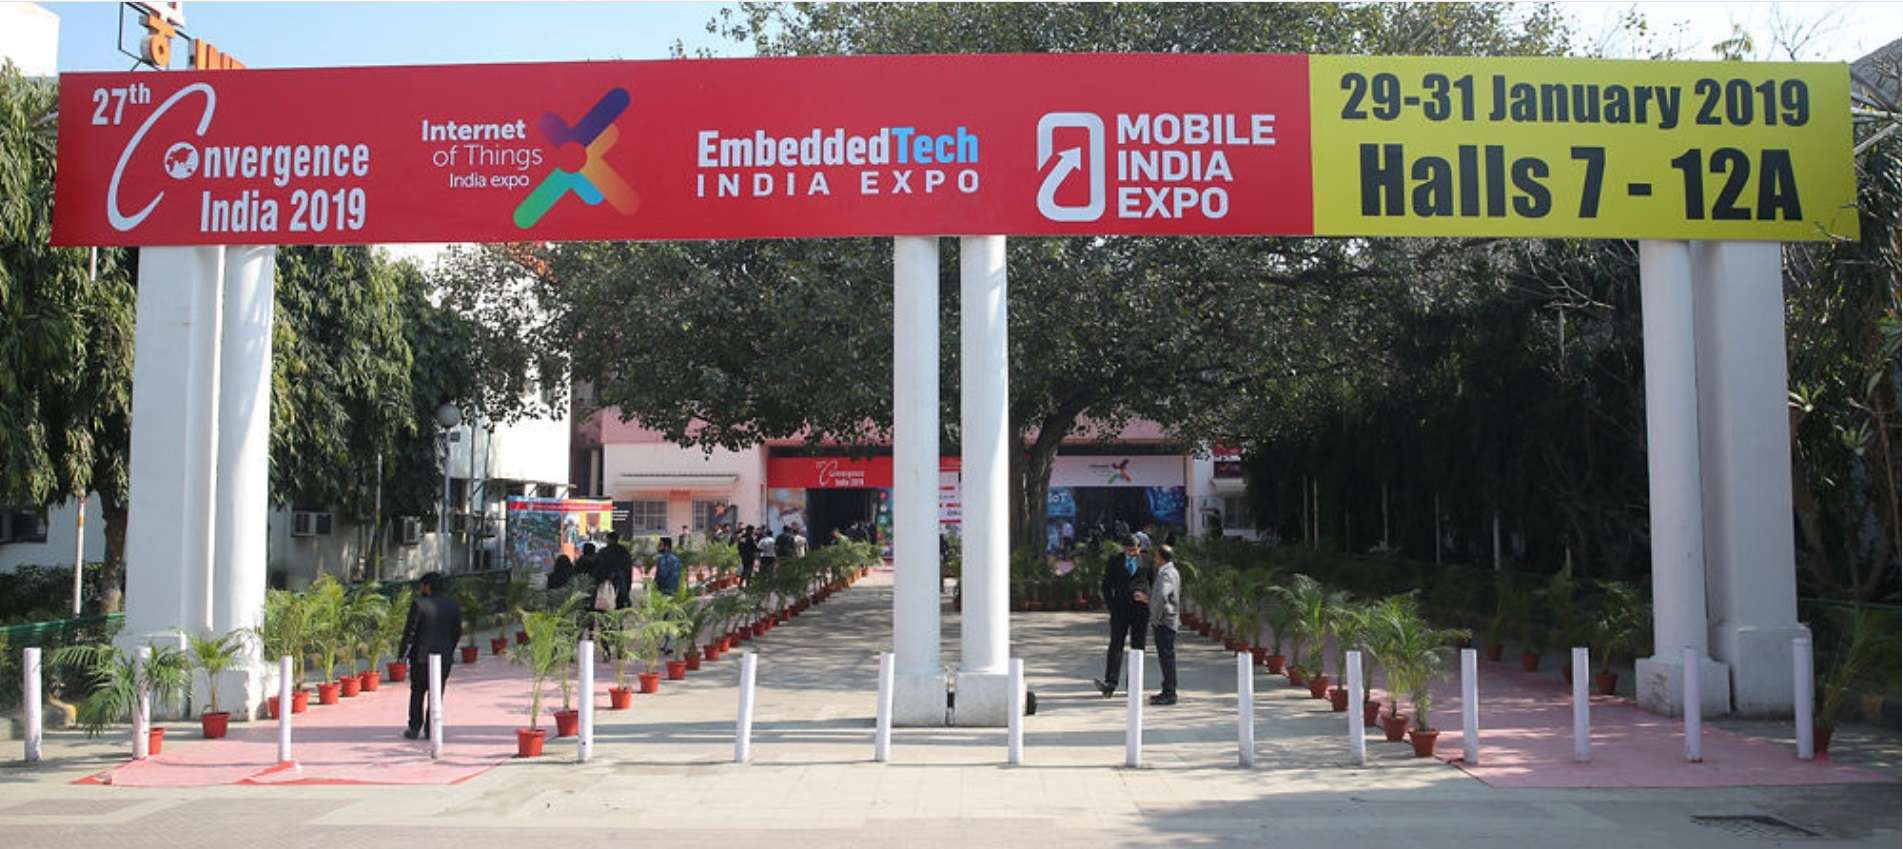 27th Internet of Things Convergence India 2019, New Delhi